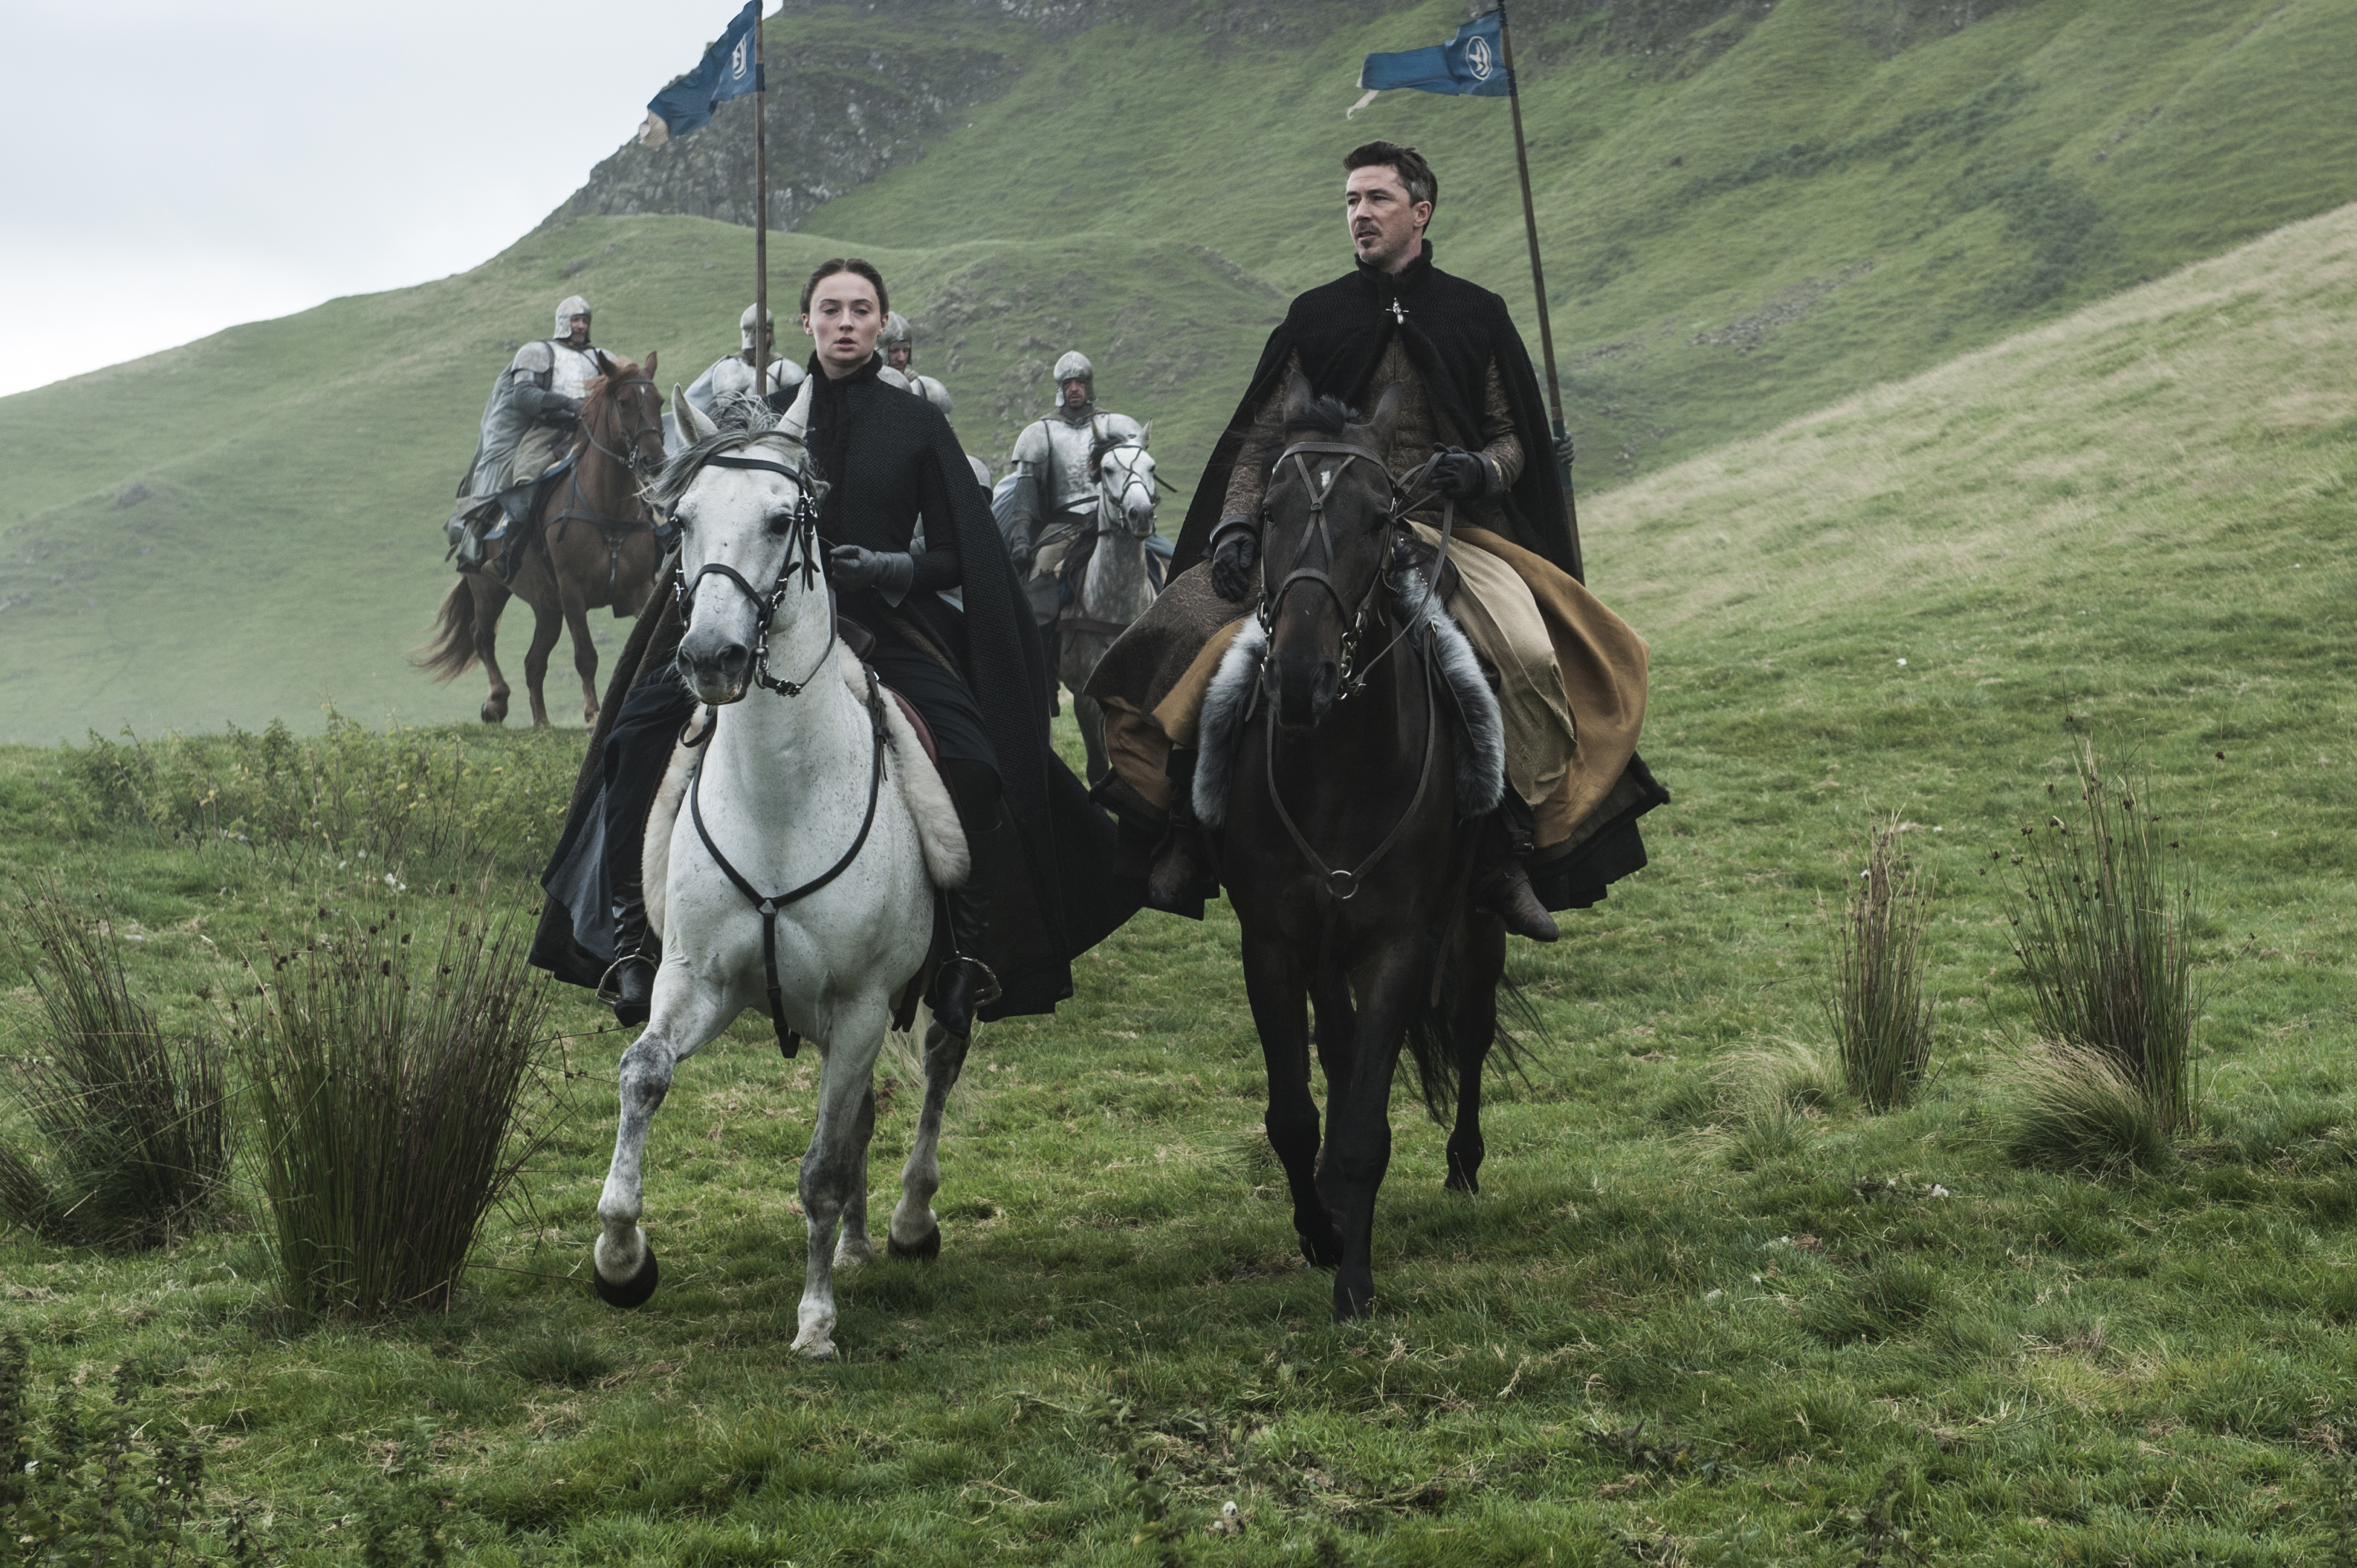 Sophie Turner and Aidan Gillen on Game of Thrones